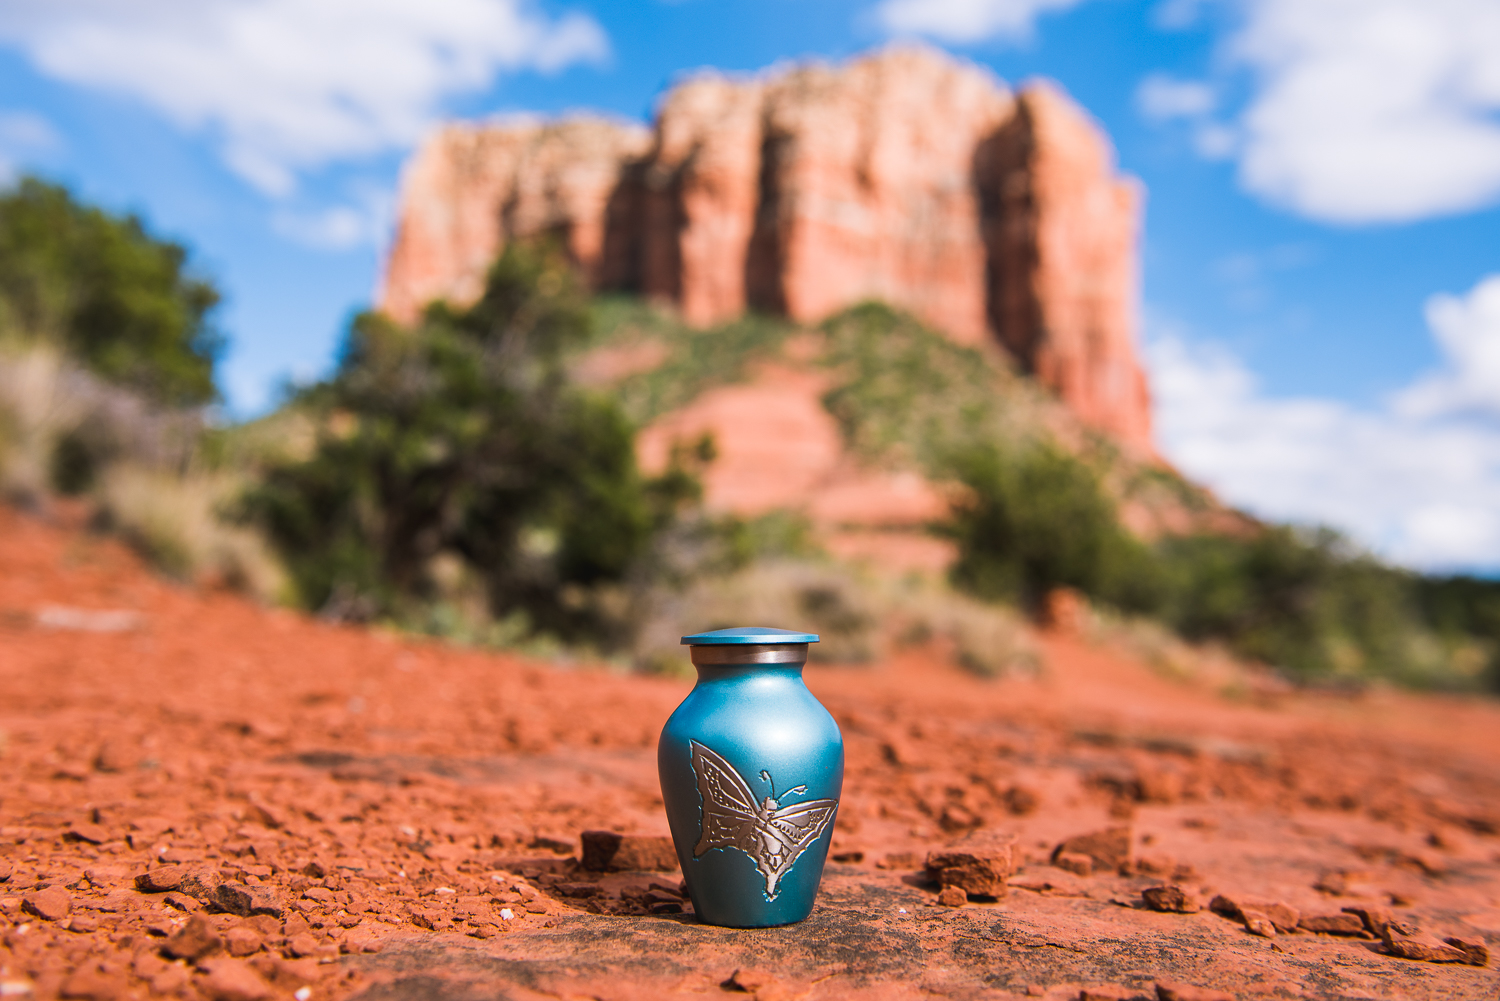 One of Edward Stuhl's wishes before he passed away in 2014 was to have his ashes spread at some of his favorite places. During our trip to Arizona, we were able to fulfill that wish when we visited the Red Rocks of Sedona. Pictured above is the butterfly engraved urn containing his ashes set in front of one of the most beautiful of Sedona's red rocks, Courthouse Butte. Before visiting Sedona ourselves, we had only heard of its allure from my father in law. Shortly after retirement, he and his wife and my mother in law, Judy, had spent several weeks there. What they brought back were stories of Sedona's unique character and appeal. Although we would have preferred to experience the Arizonan town with him while he was alive, we were able to enjoy Sedona with him in our own special way.